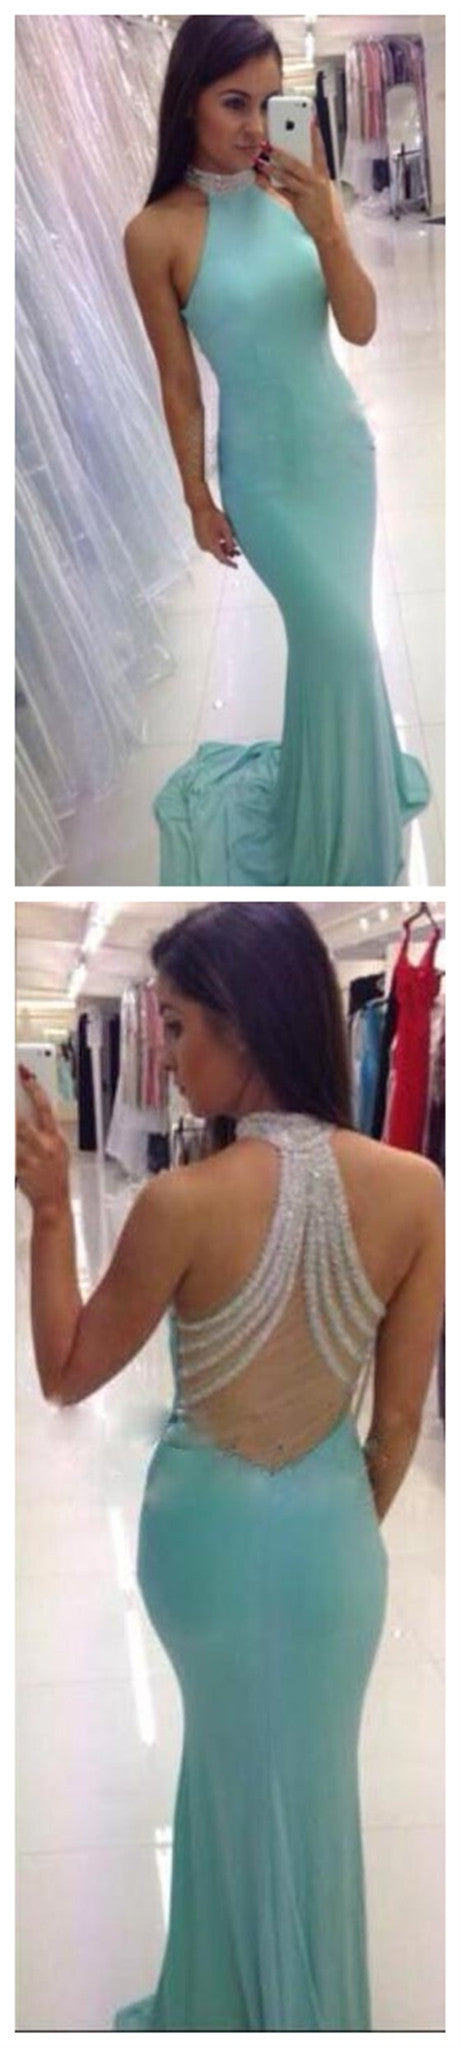 Popular High Neck Mermaid Tiffany Blue Unique Beading Back Elegant Evening Party Prom Dress ,PD0030